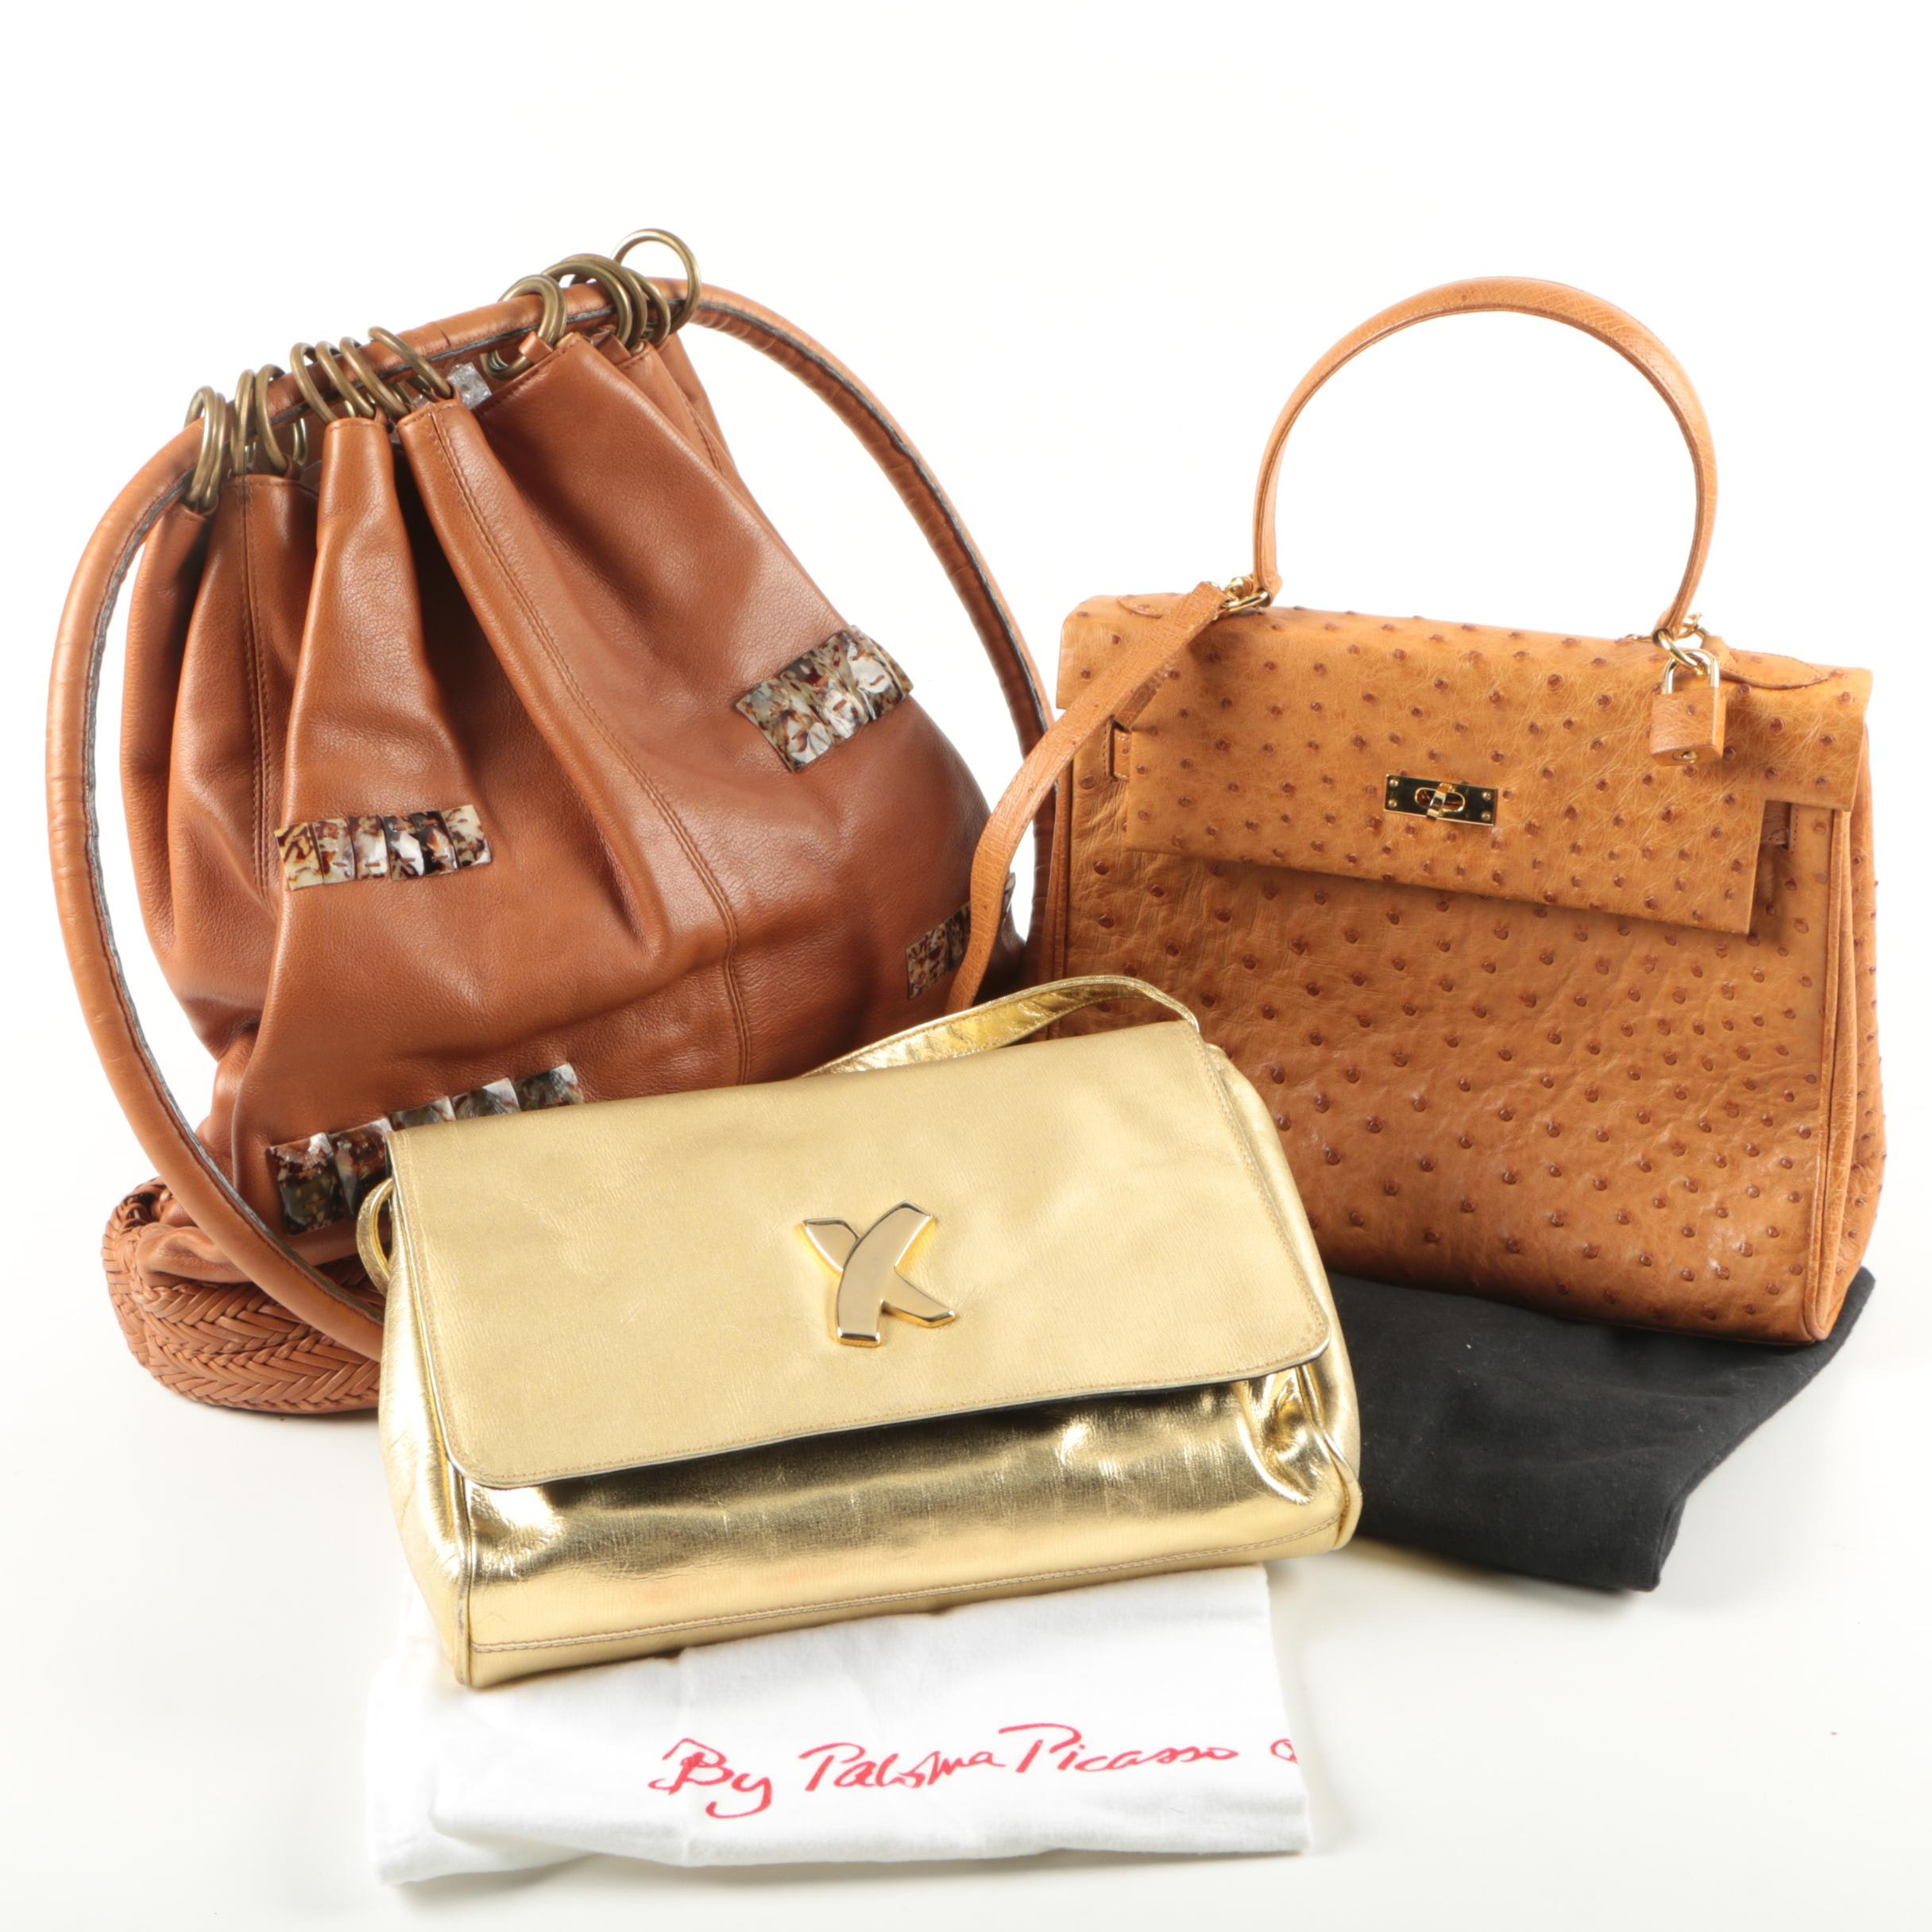 Assortment of Purses